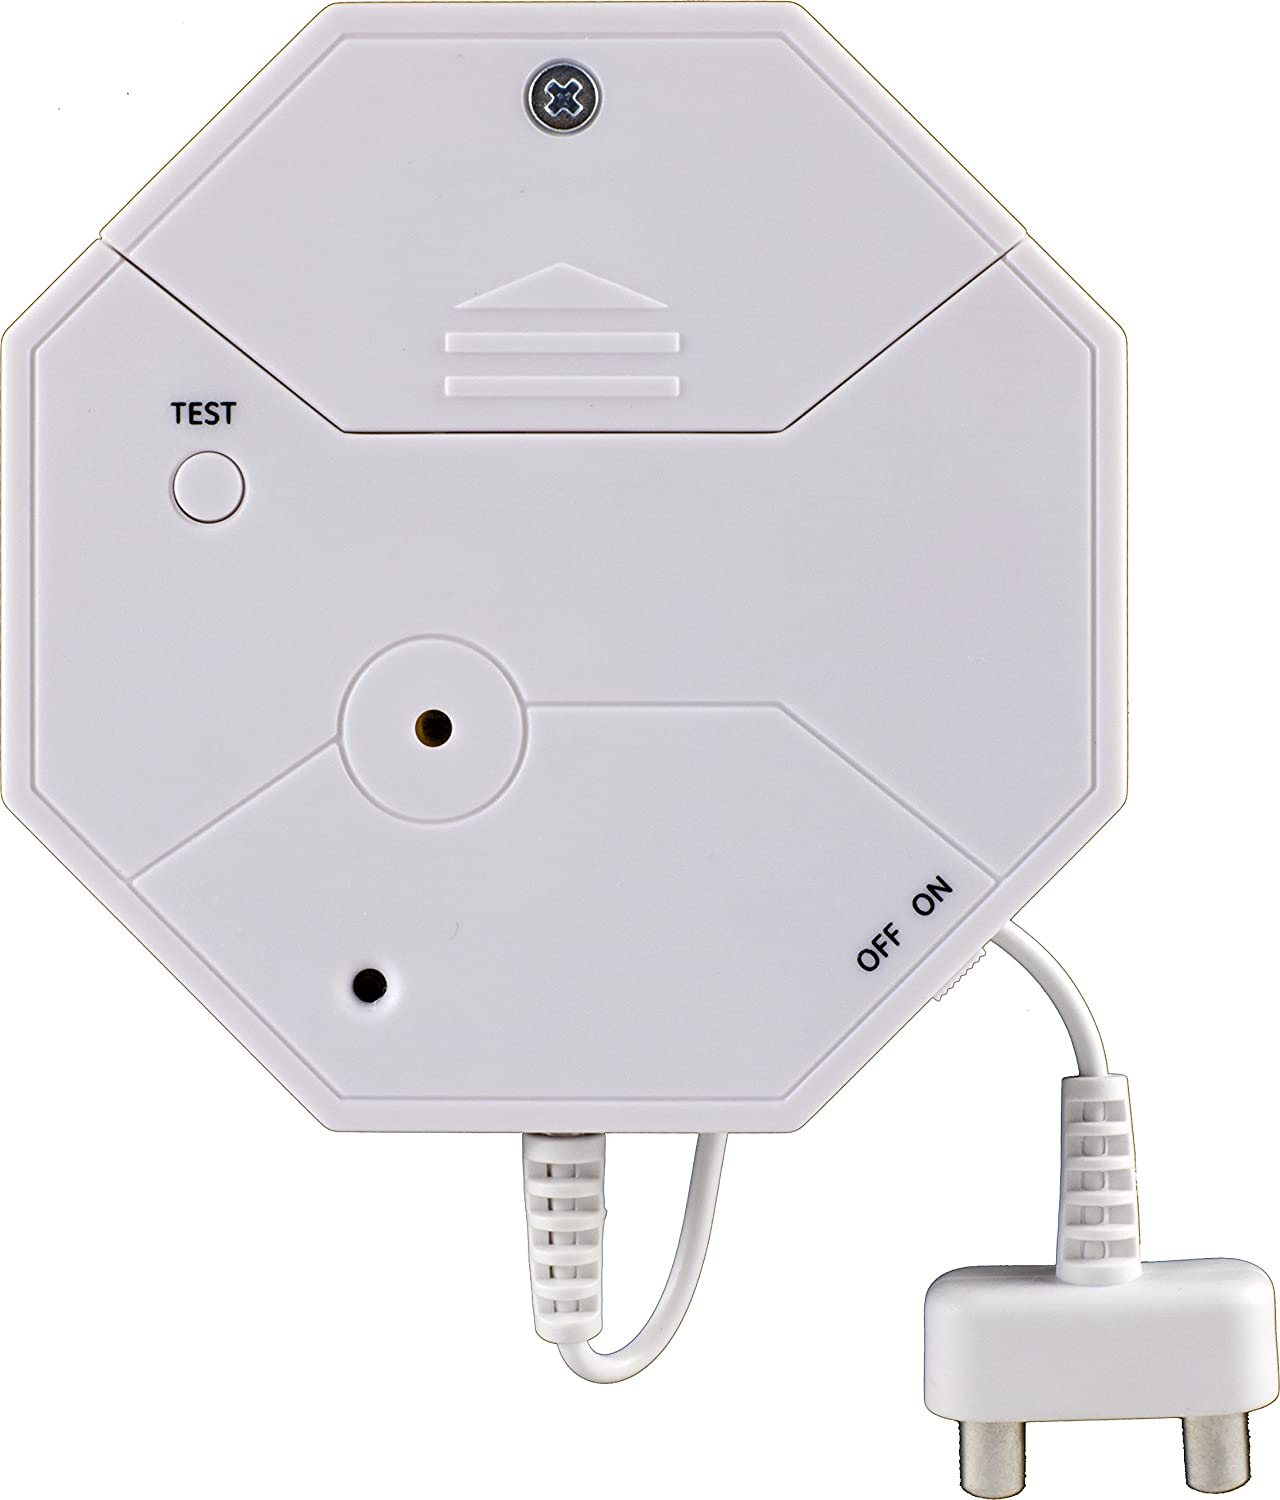 GE Personal Security Water Leak Alarm, Water Leak Detection,Ideal for Bathroom, Laundry Room, Basement, Garage and More, 45411